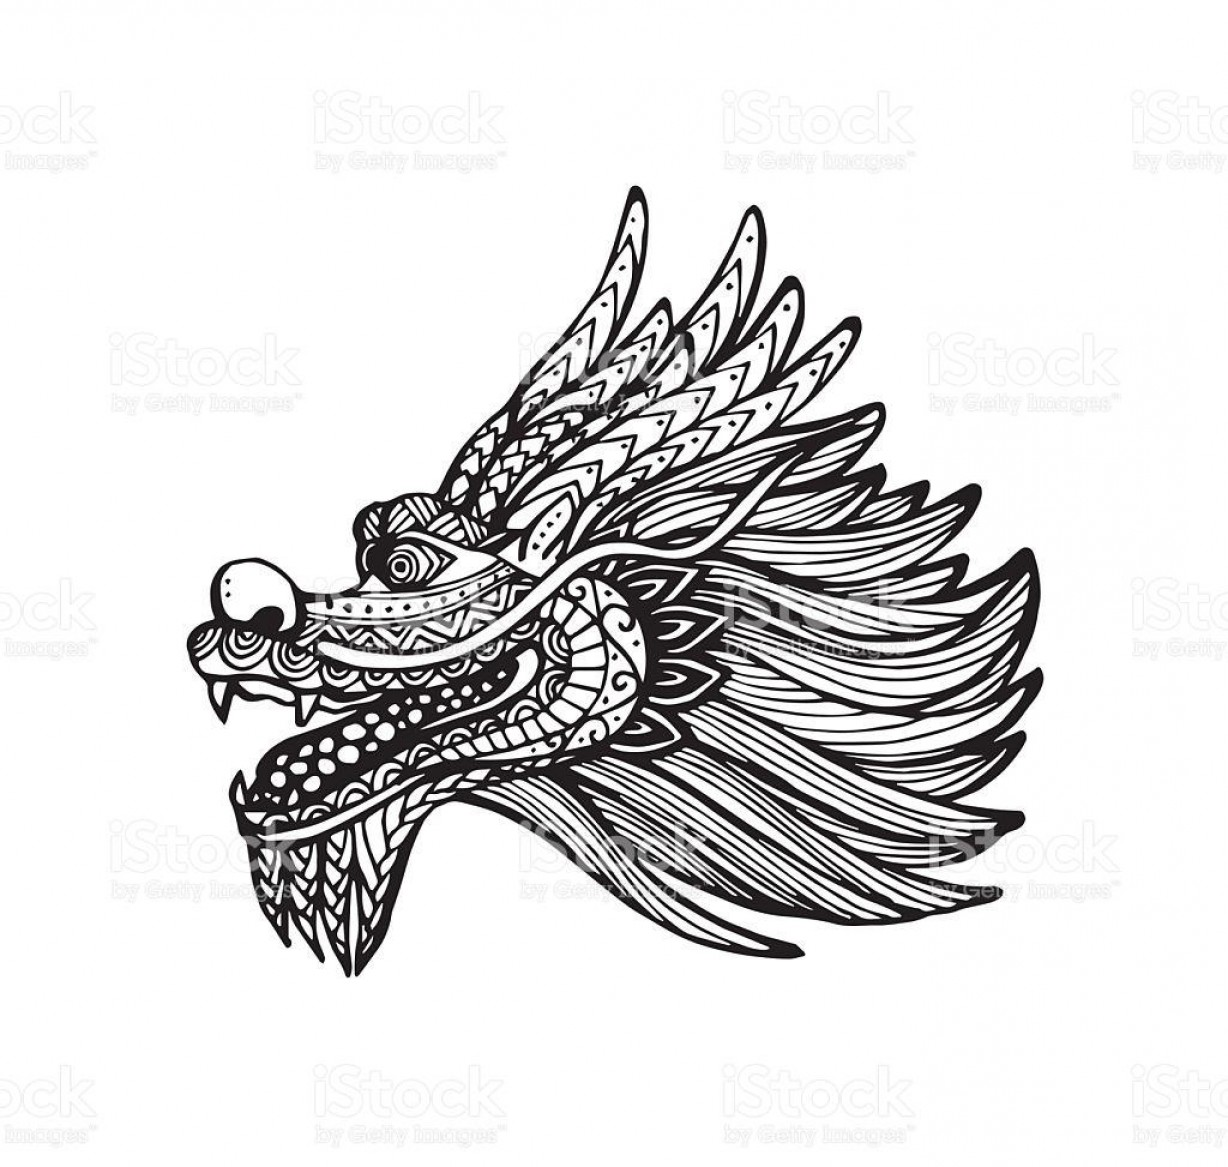 1228x1167 chinese dragon head drawing hd vector of chinese dragon head